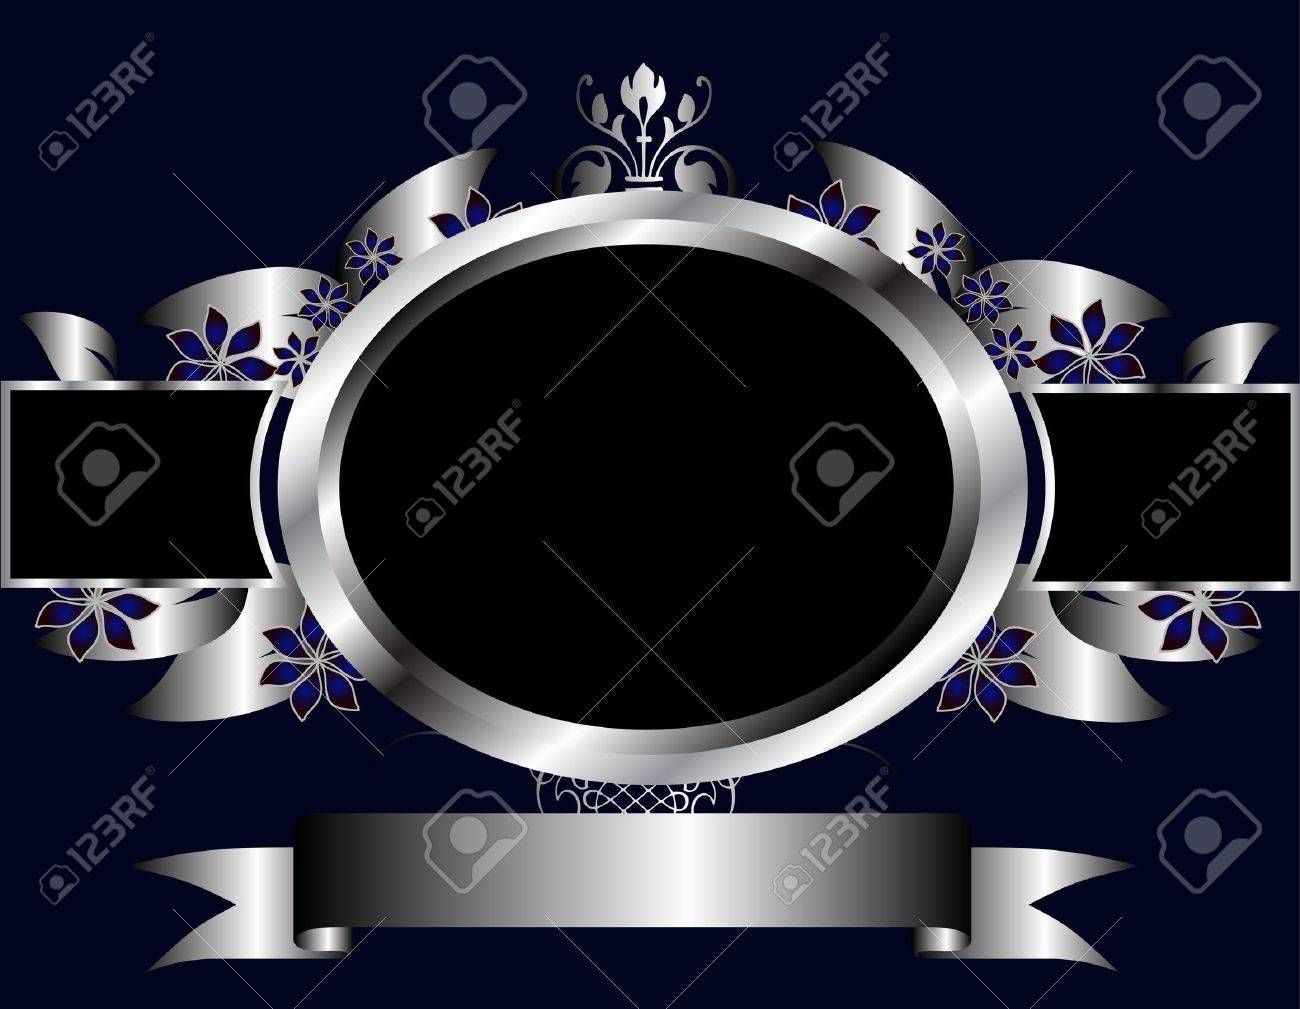 A silver floral design with room for text on a royal blue background Stock Vector - 8395429